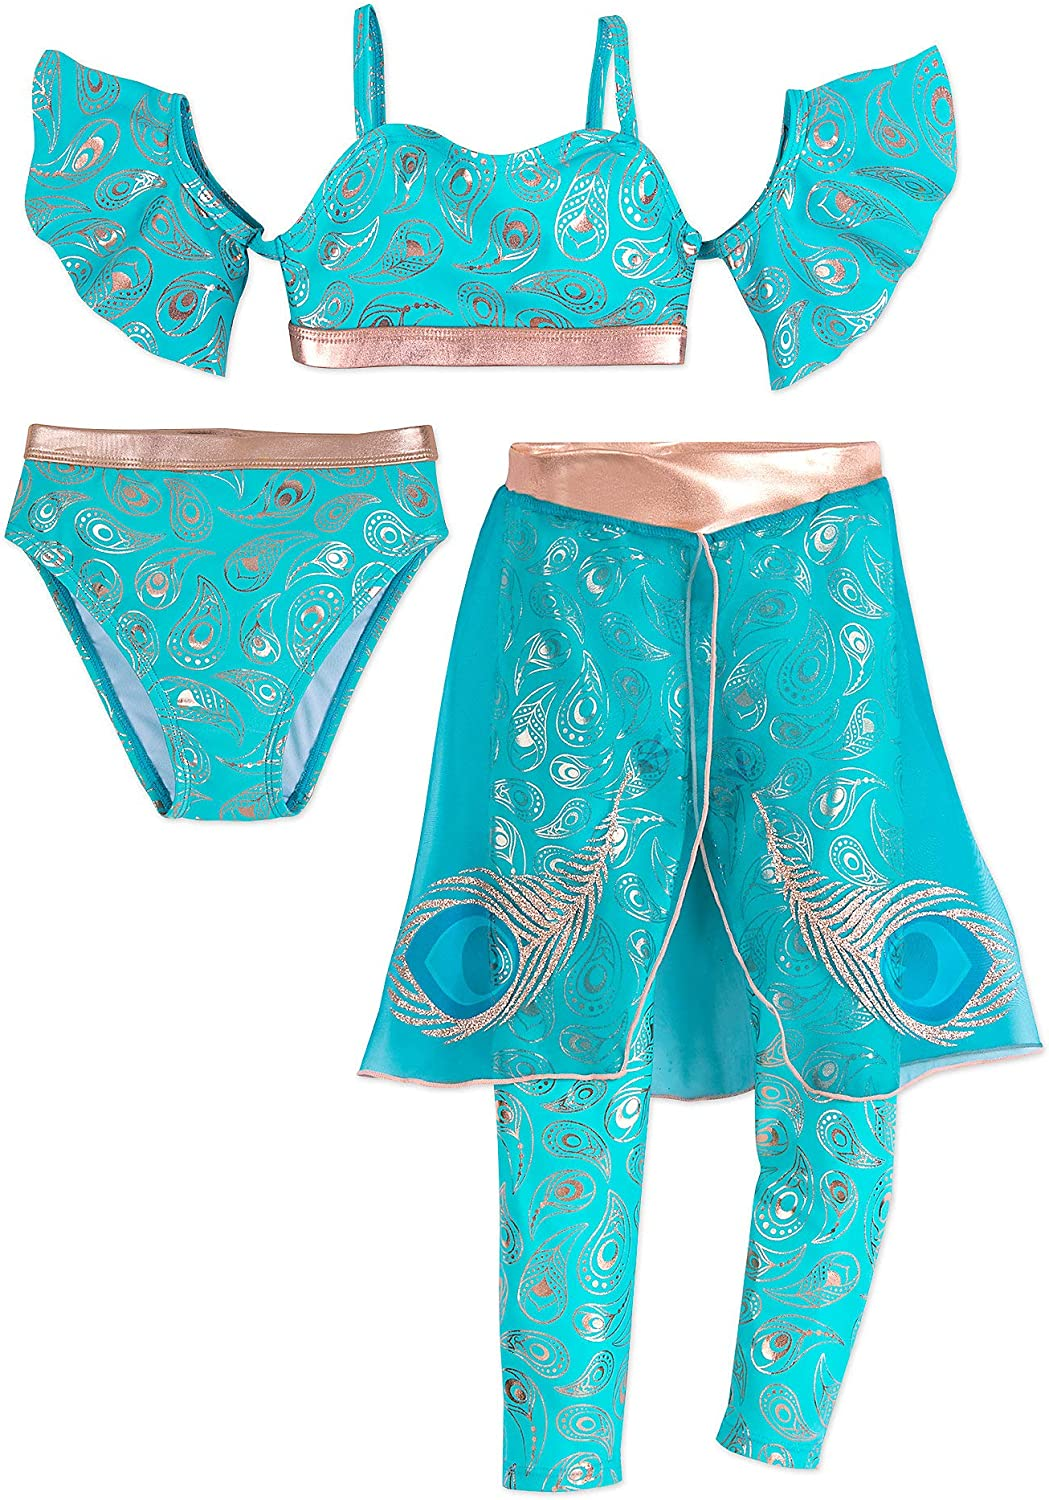 Disney Store Aladdin Jasmine Deluxe Swimsuit Costume Collection 3 Pc Live Action